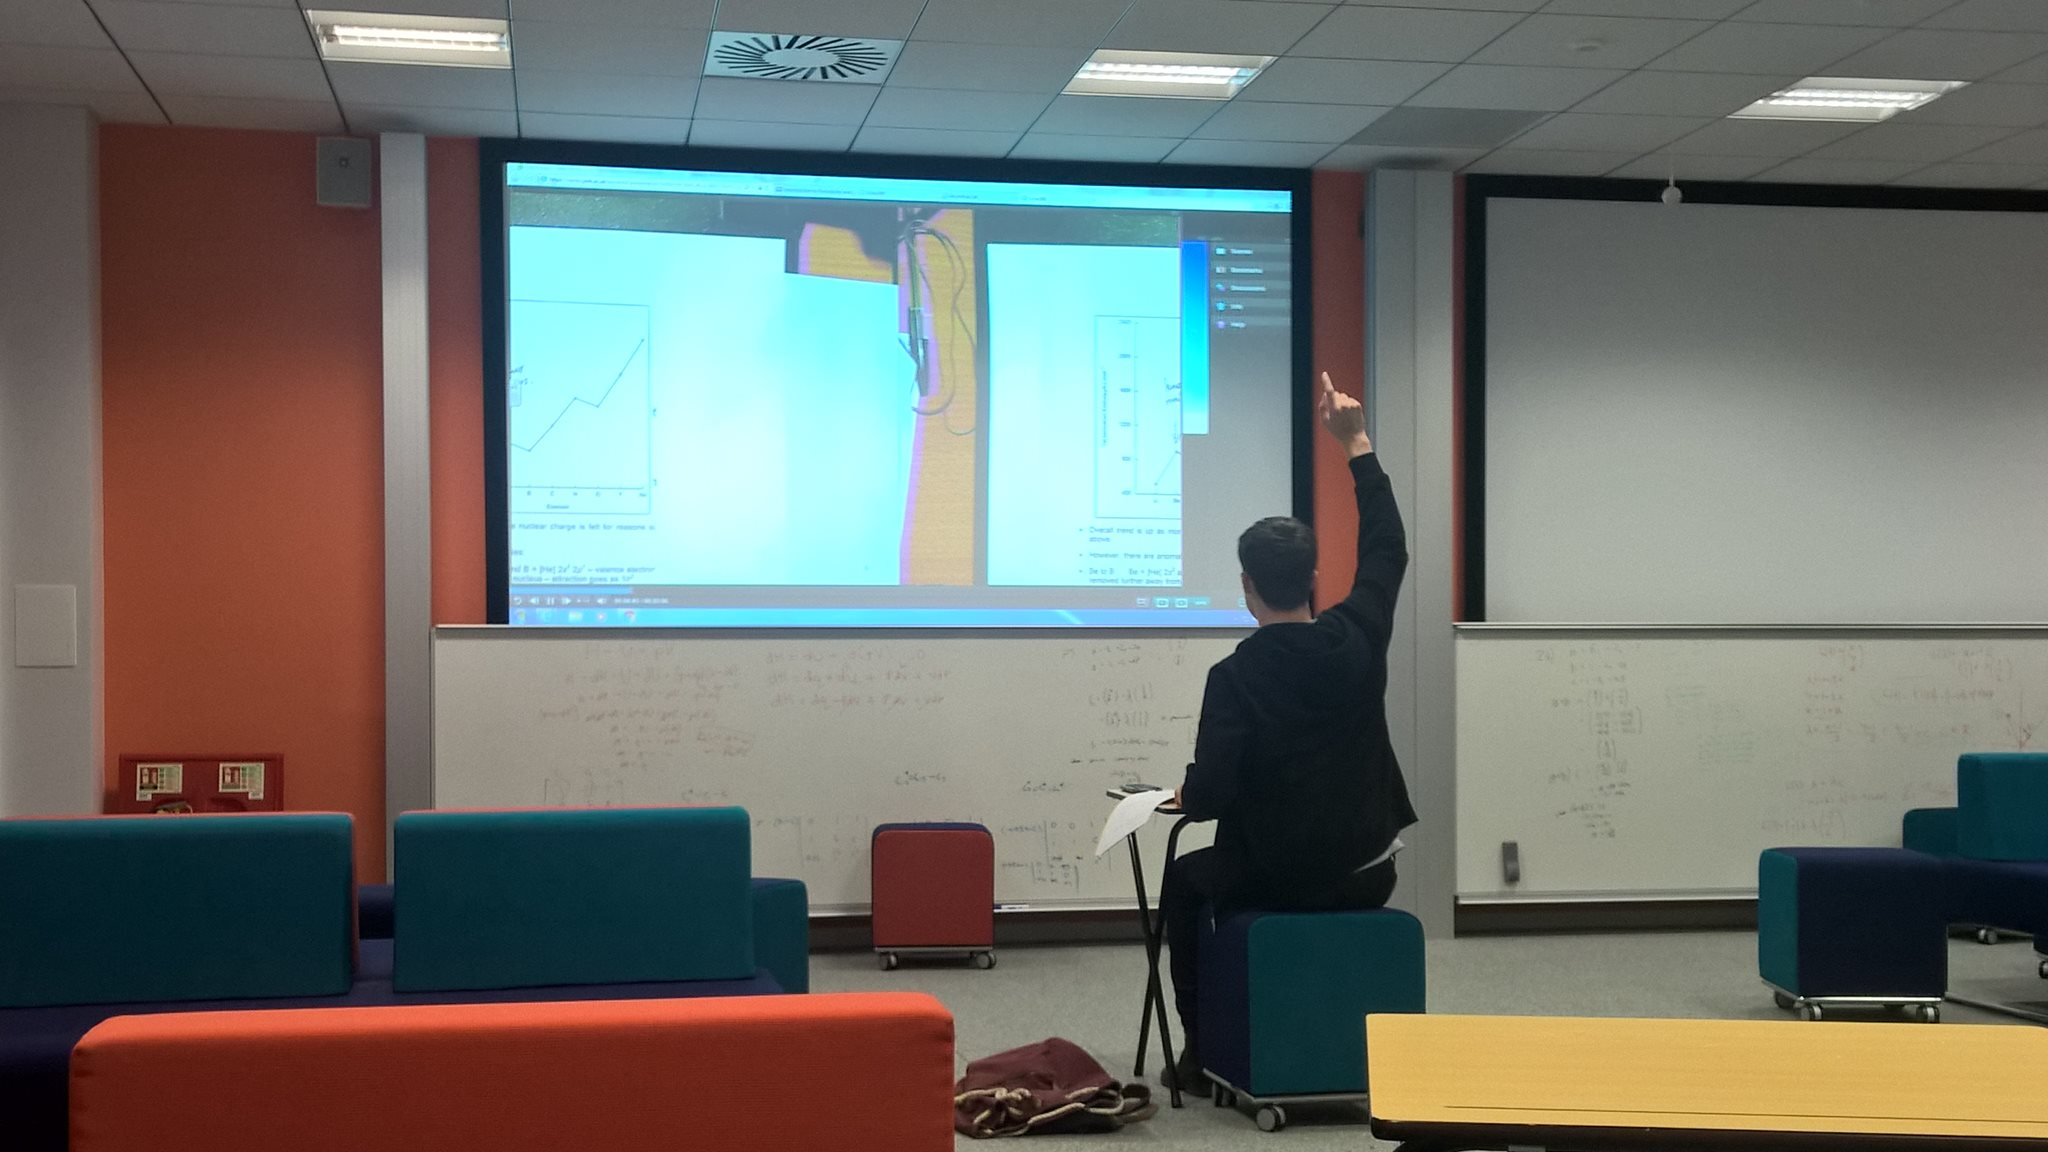 I used the room to catch up on a missed lecture and made the situation as real as possible.